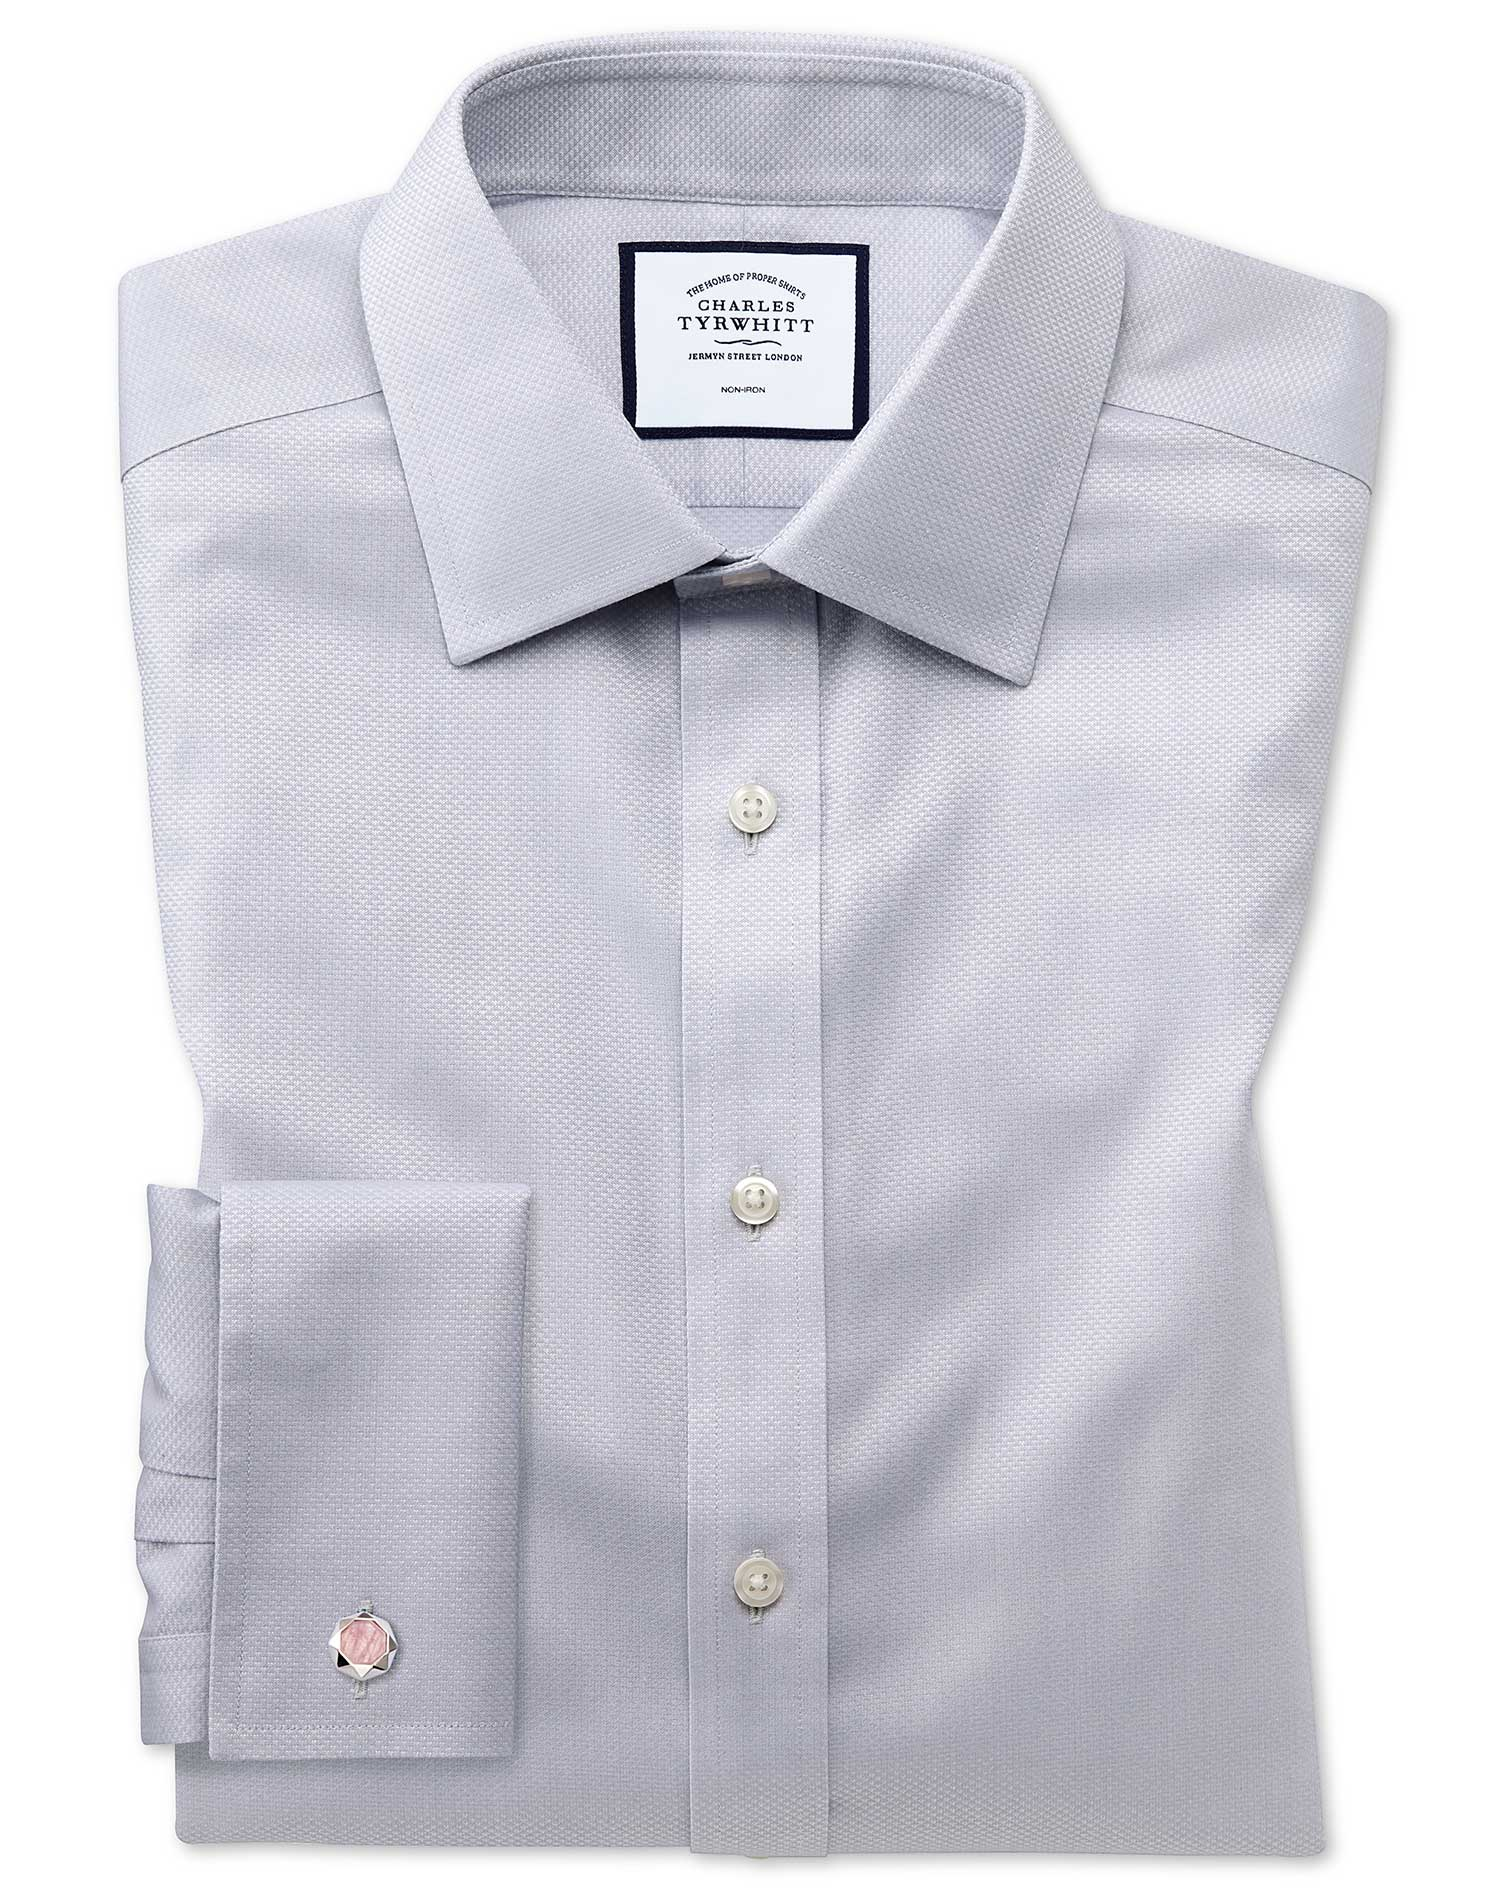 Slim Fit Non-Iron Grey Triangle Weave Cotton Formal Shirt Double Cuff Size 16/34 by Charles Tyrwhitt